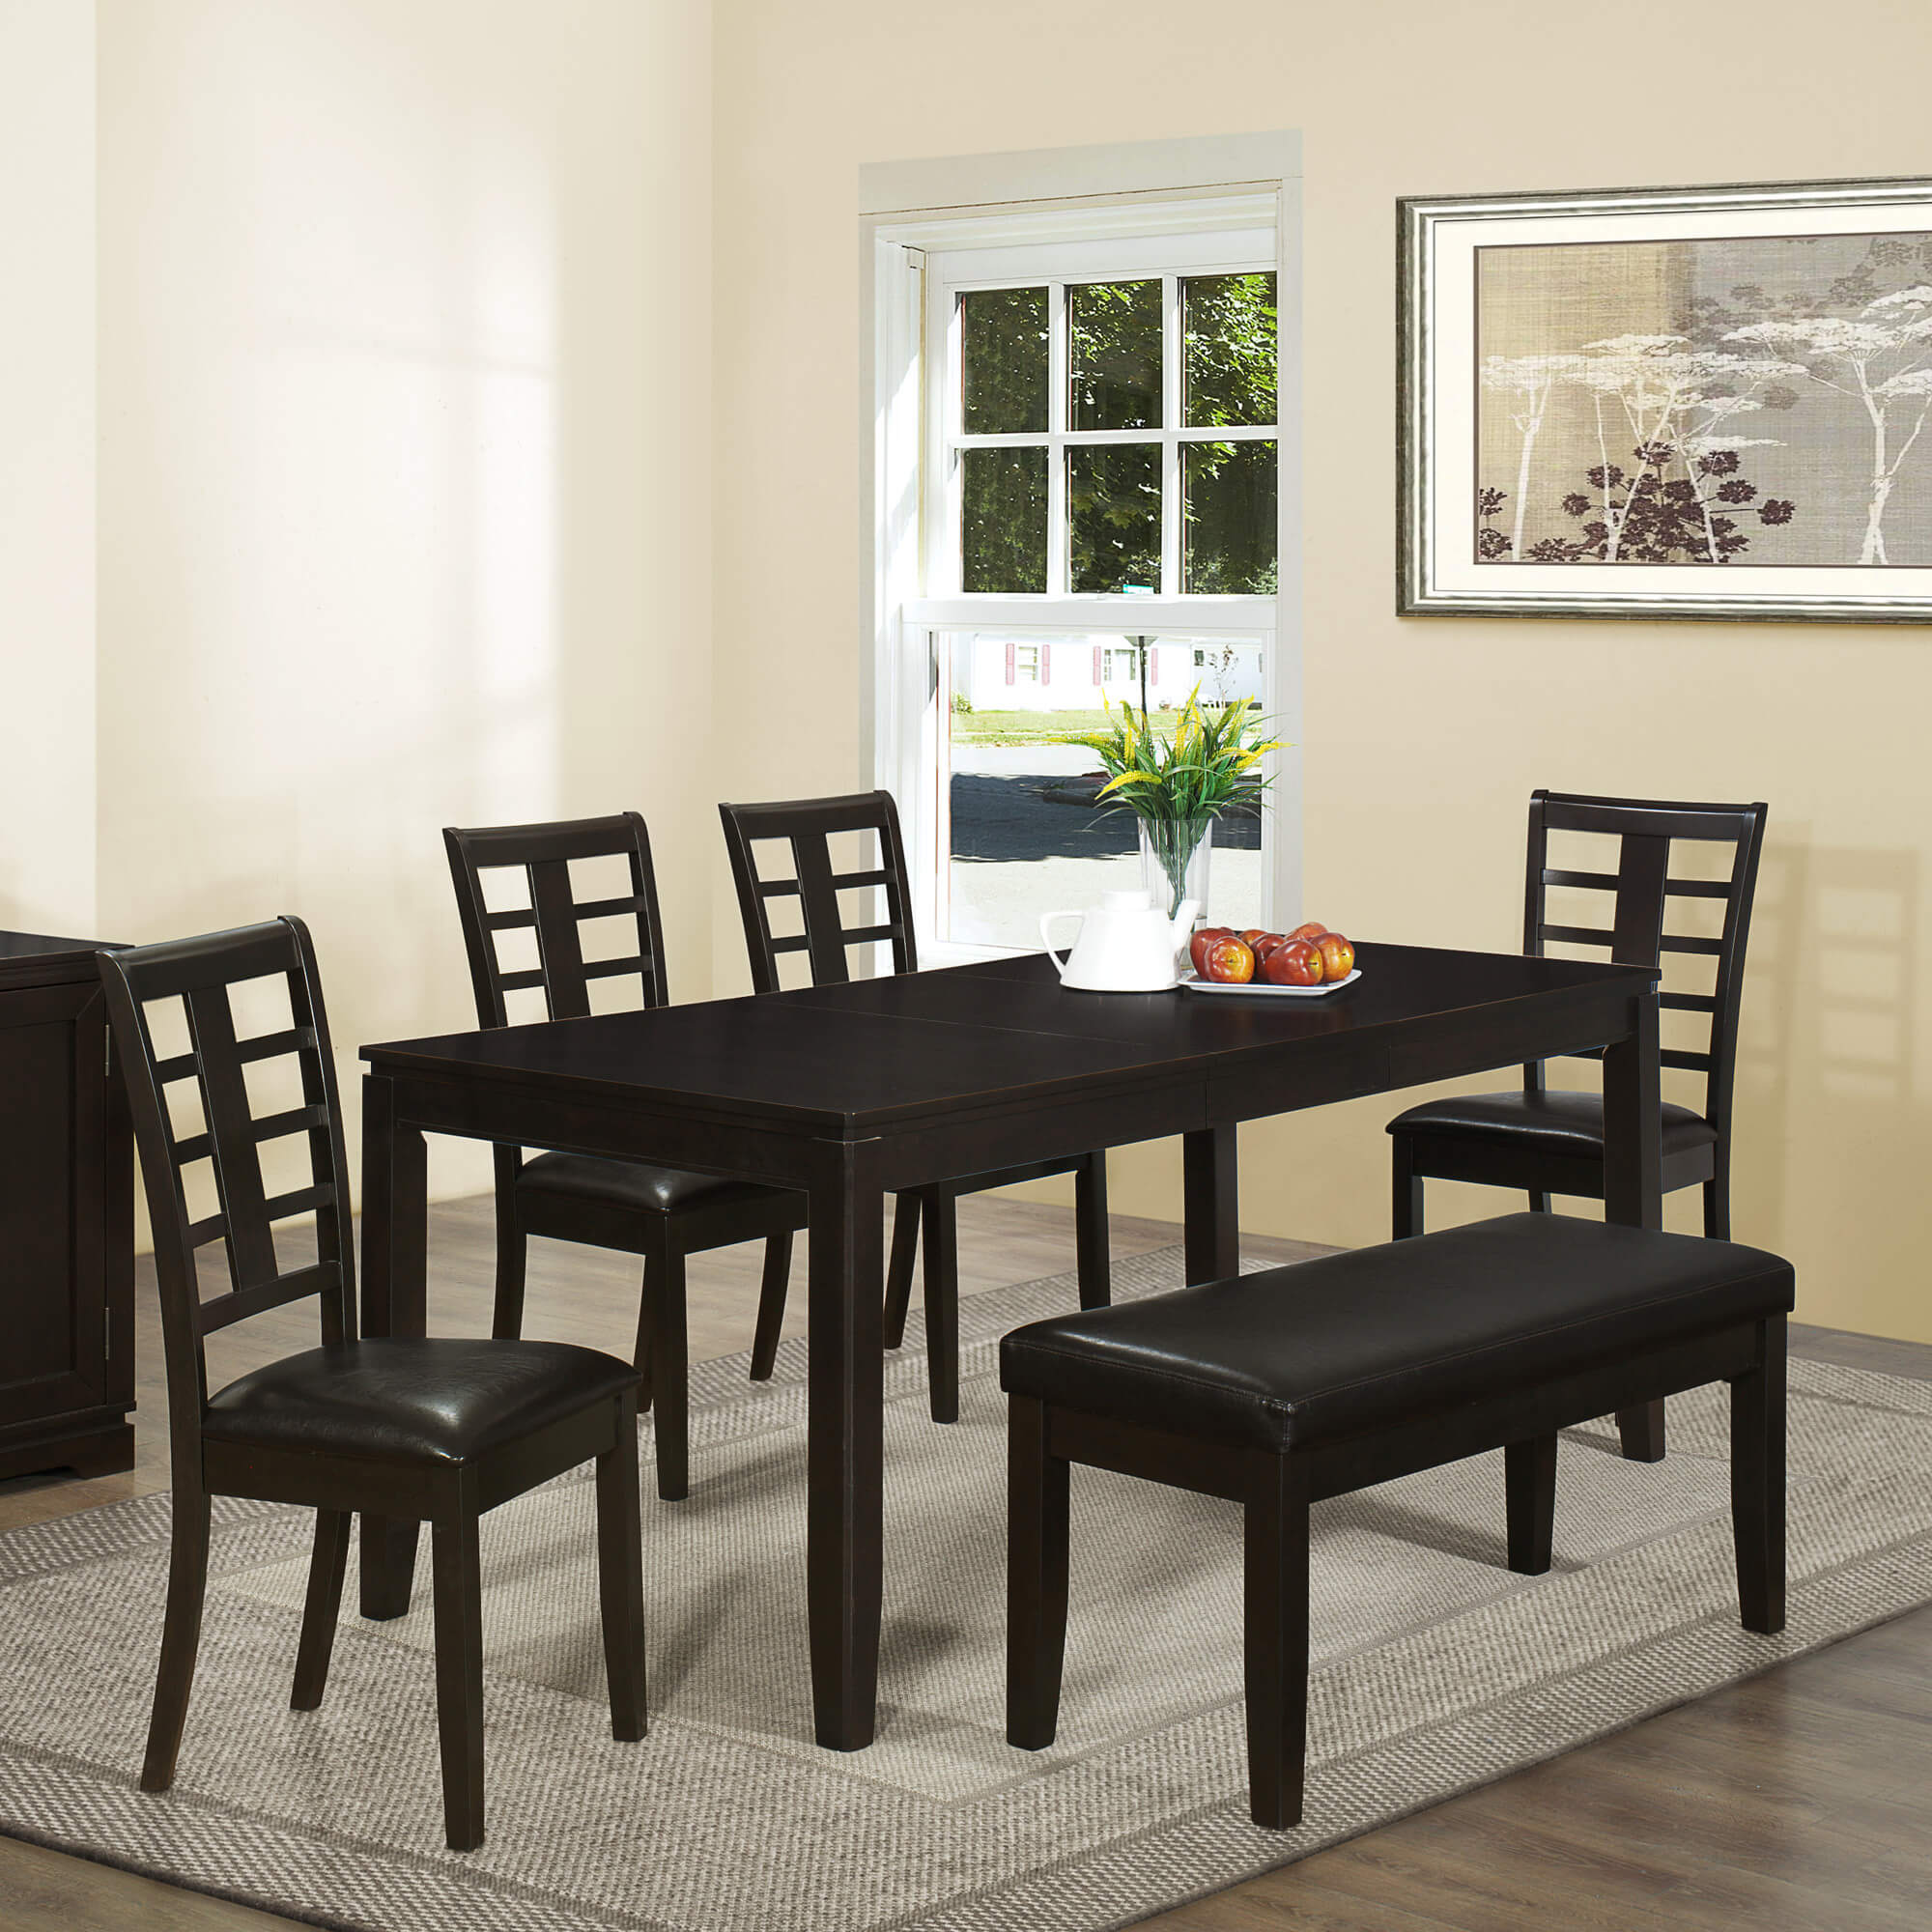 Peachy Small Dining Room Table And Chairs Small Spaces Dining Room Home Interior And Landscaping Ologienasavecom